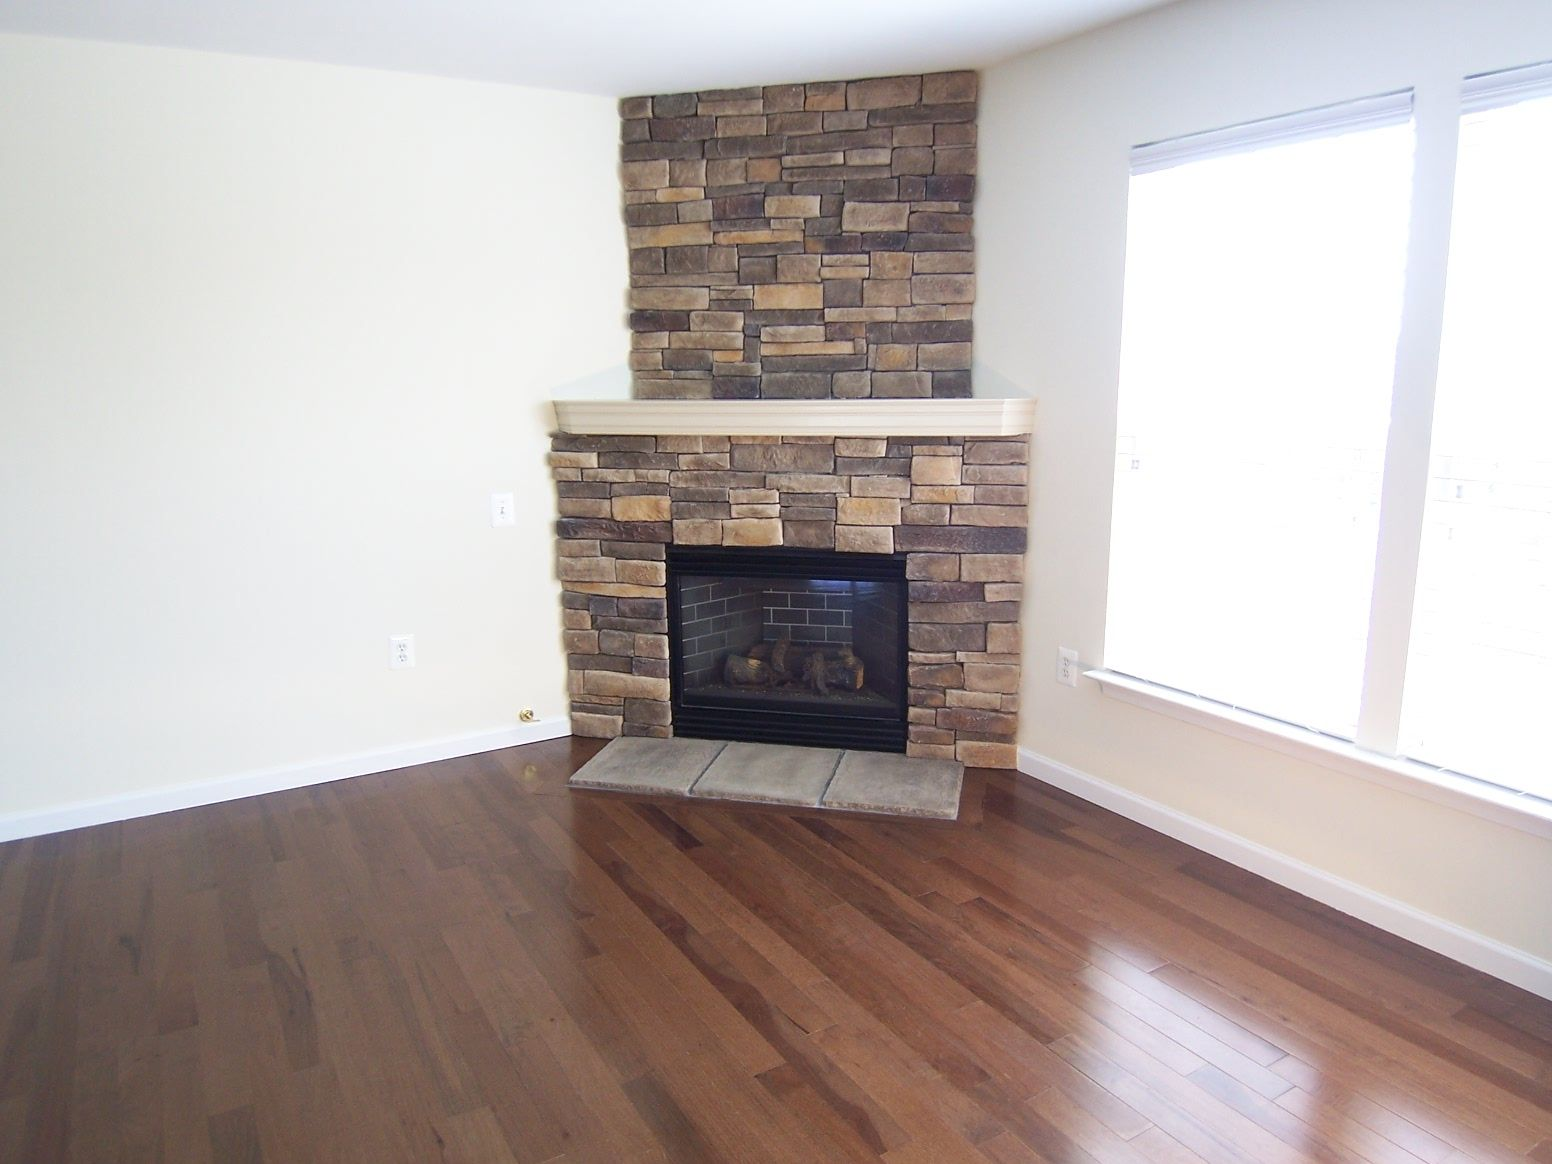 upgrade old corner gas fireplace with stone. Posted by ...